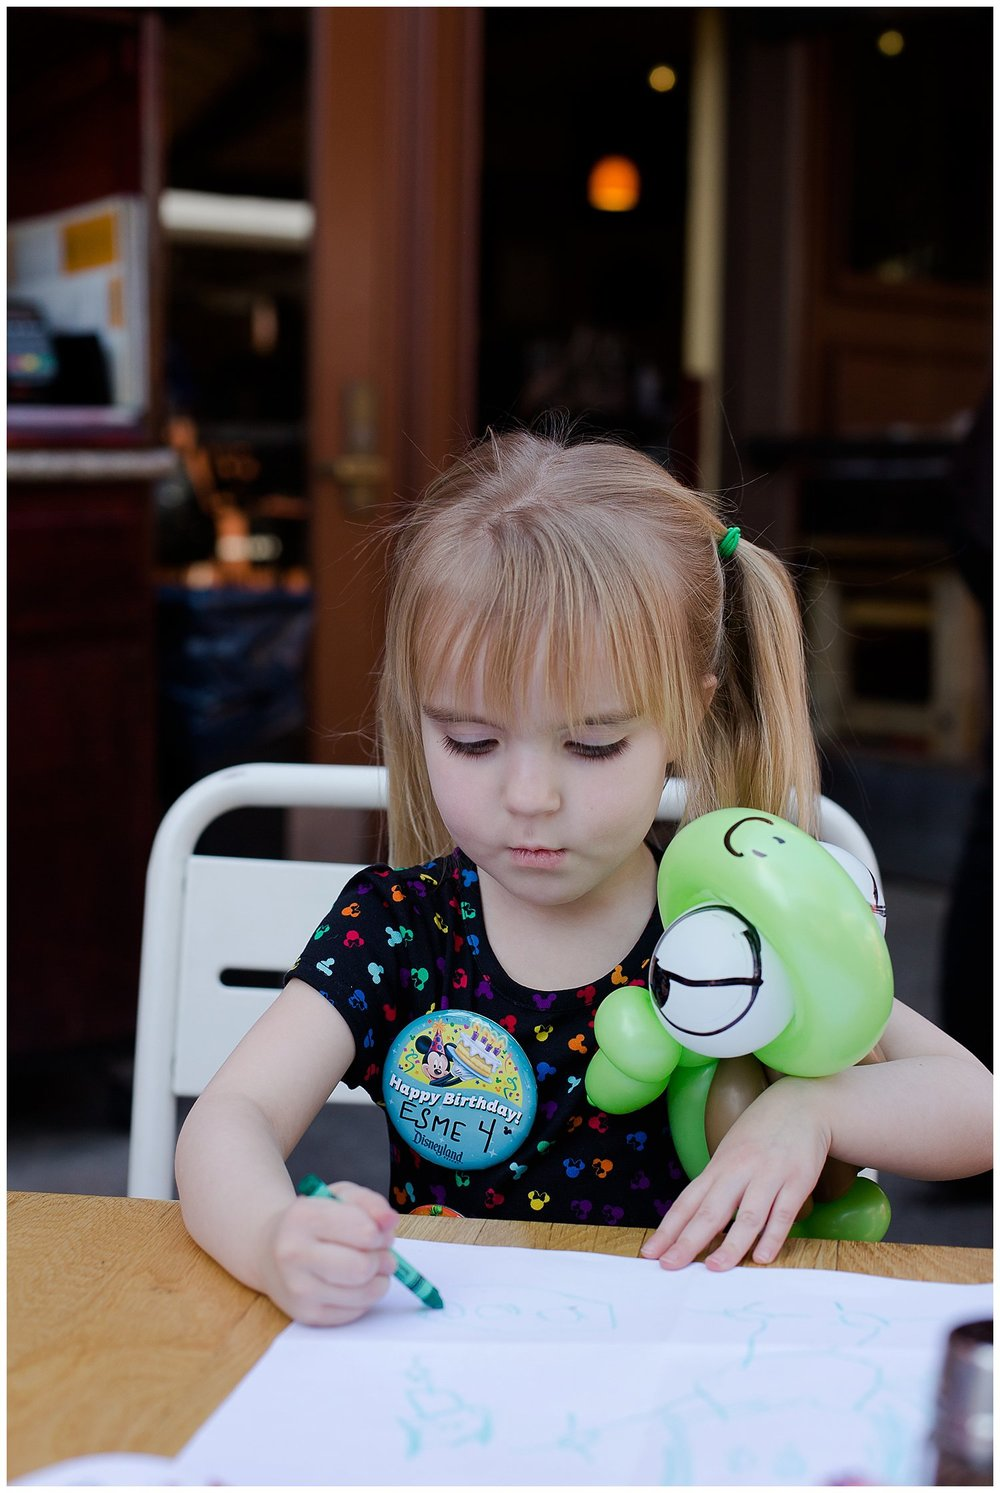 Time for a little lunch and coloring break! Some nice gentlemen came around making balloon characters for the kiddos. We were happy to tip as it kept the kids entertained waiting on their lunch! Esme had her birthday pin on pretty much every single day of the trip!